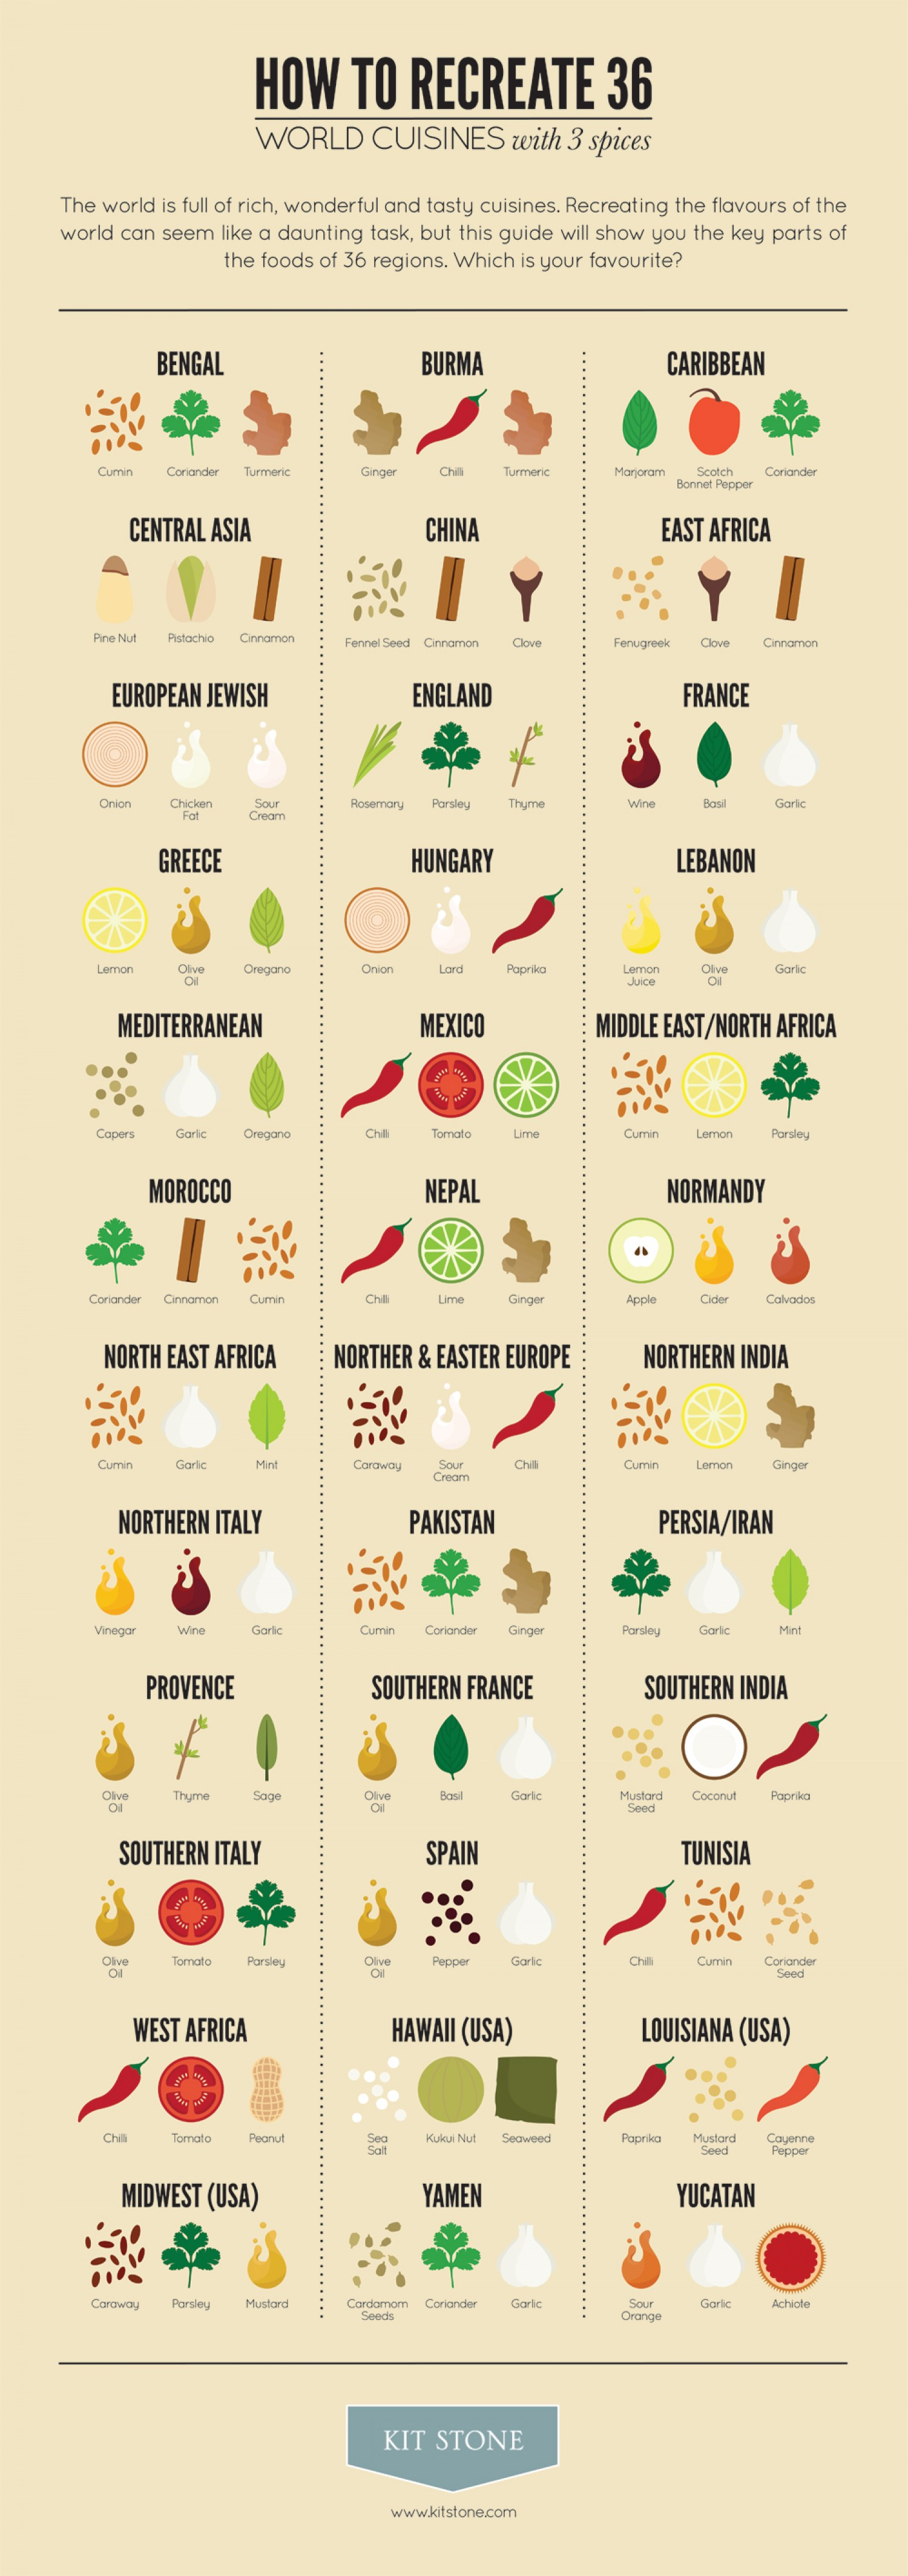 Use These Spice Combinations To Recreate The Flavors Of 36 World Cuisines Infographic